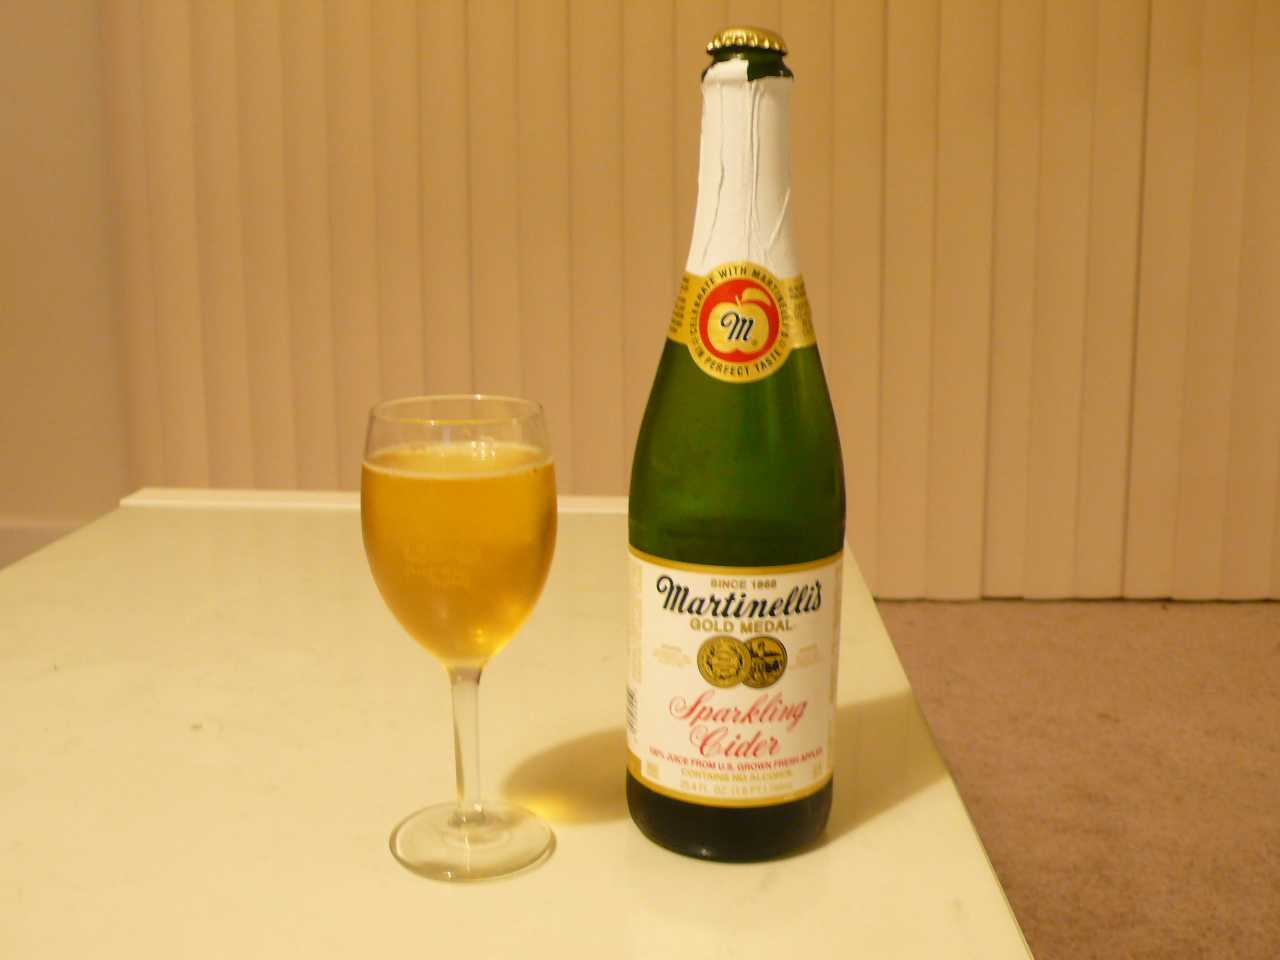 Martinelli's Sparkling Cider in ワインフェスタのグラス